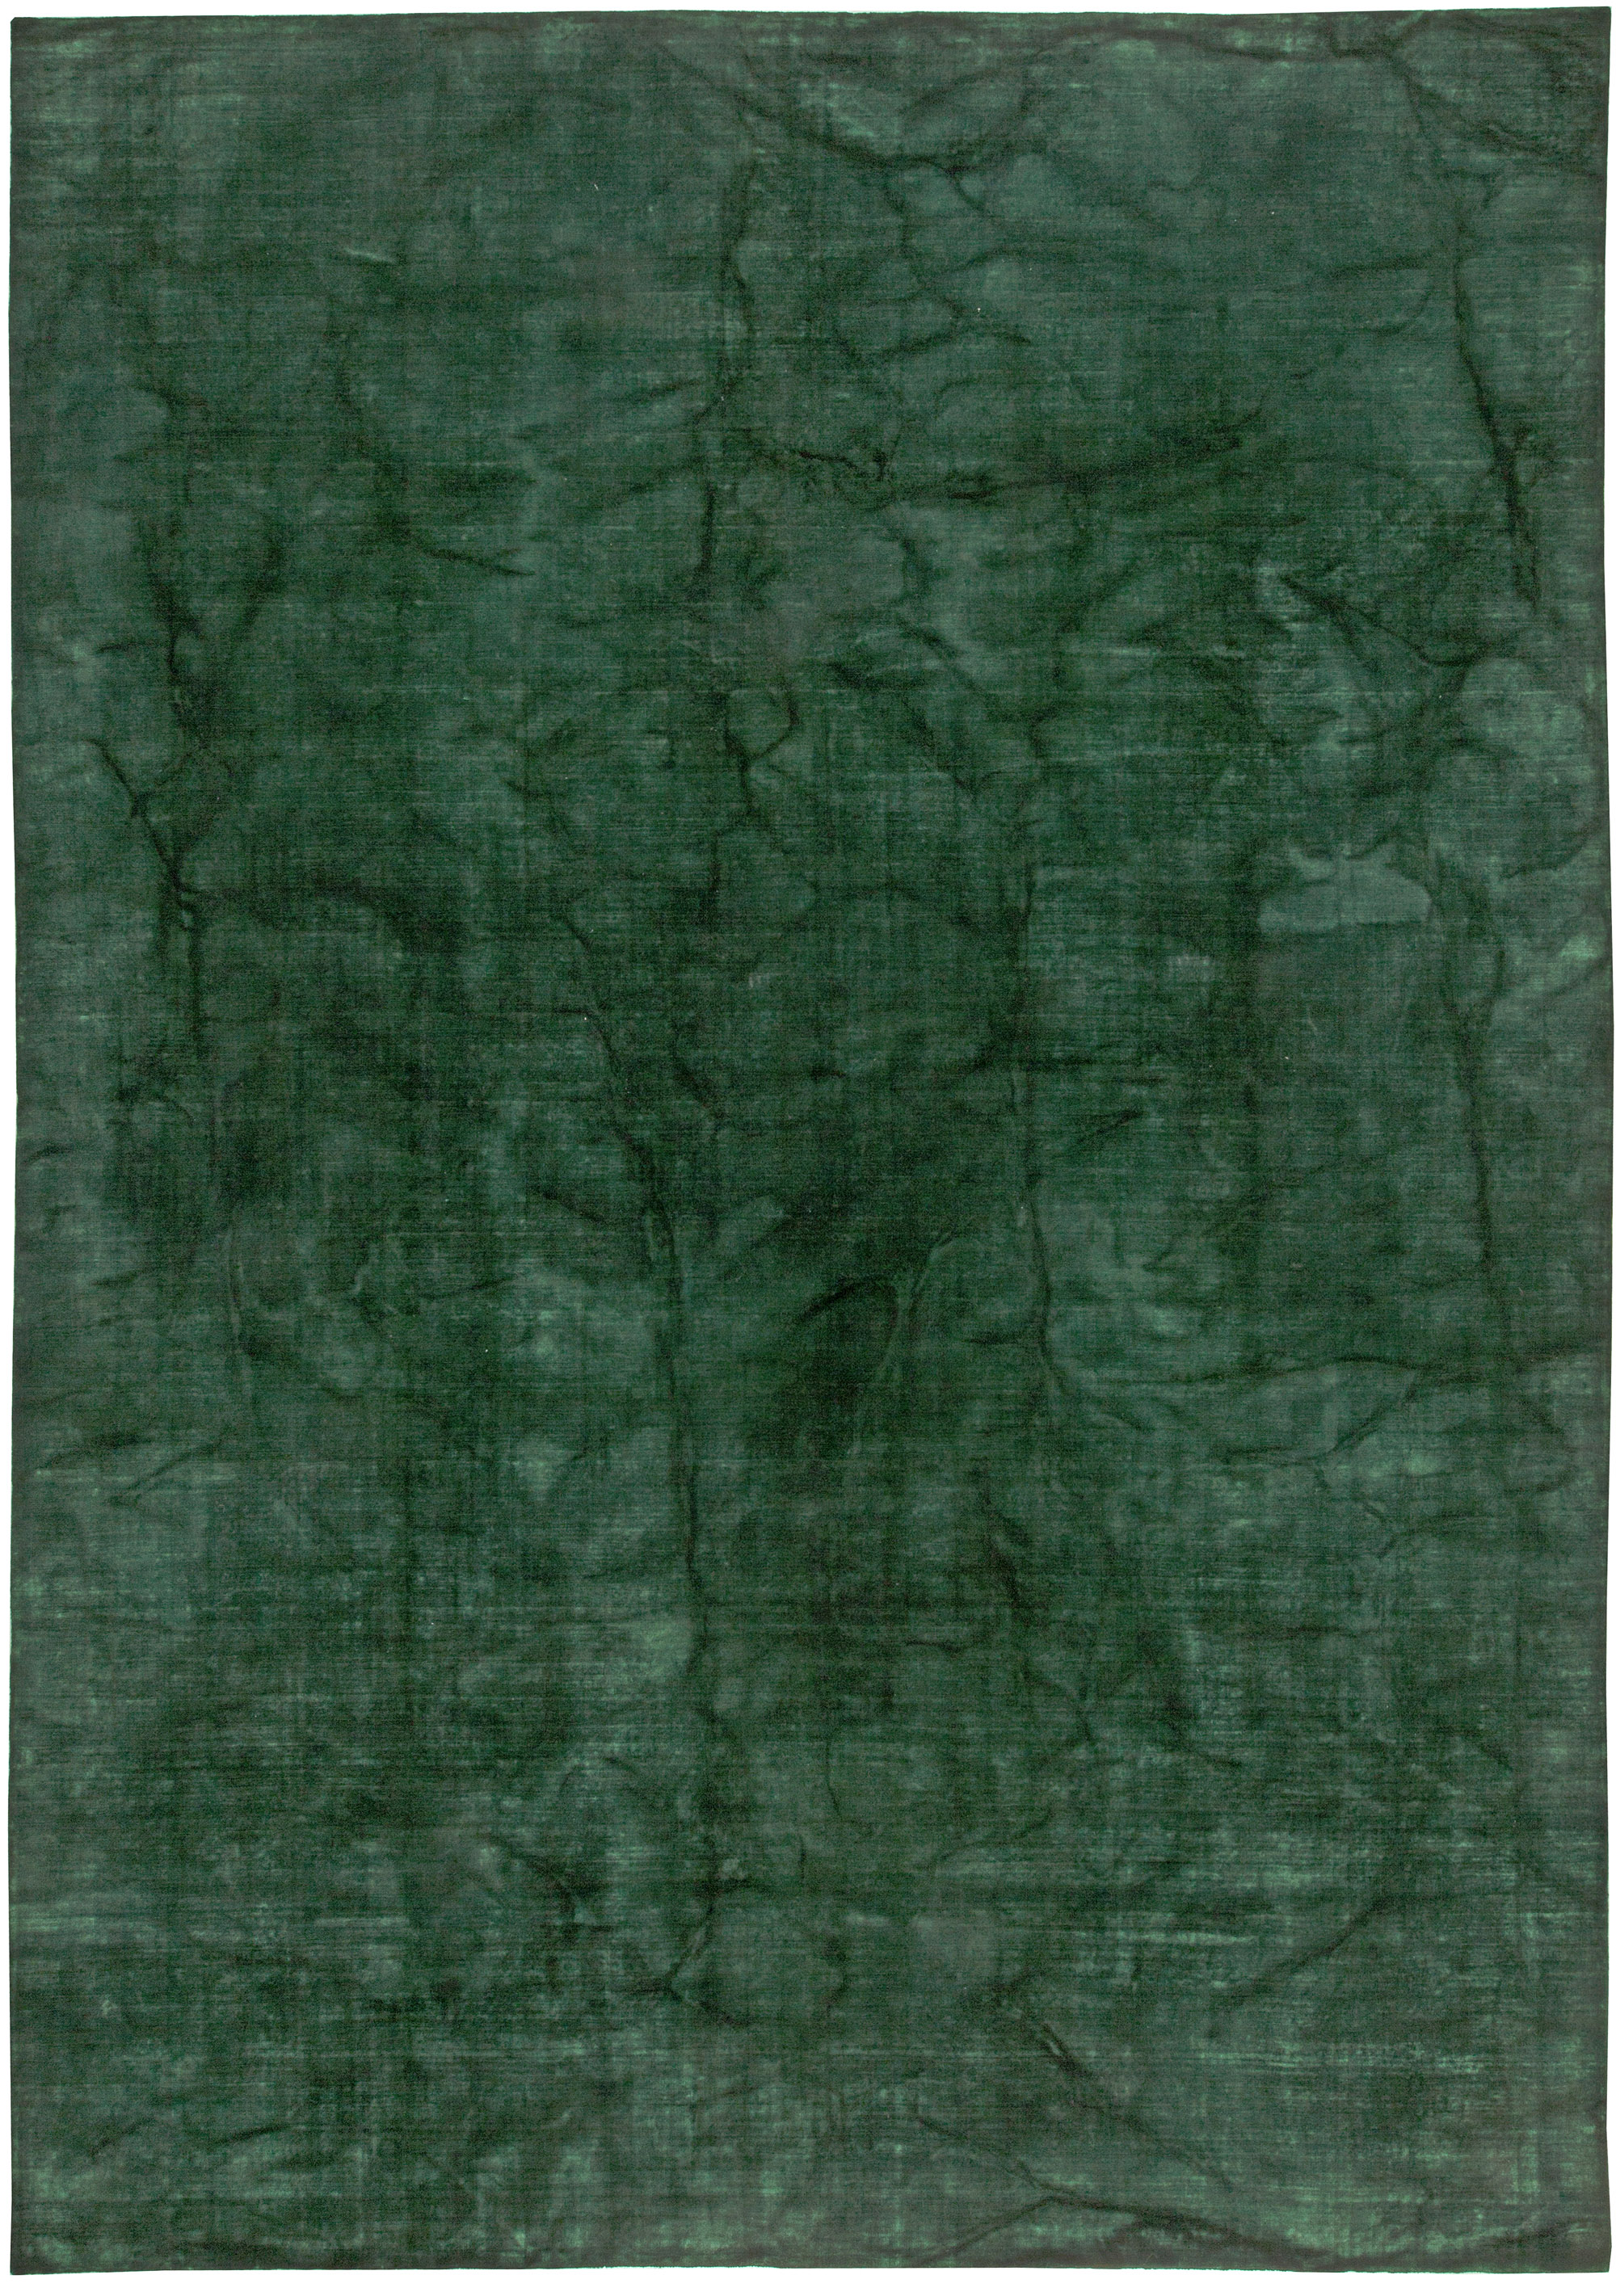 Agua Green Rug N10843 By Doris Leslie Blau